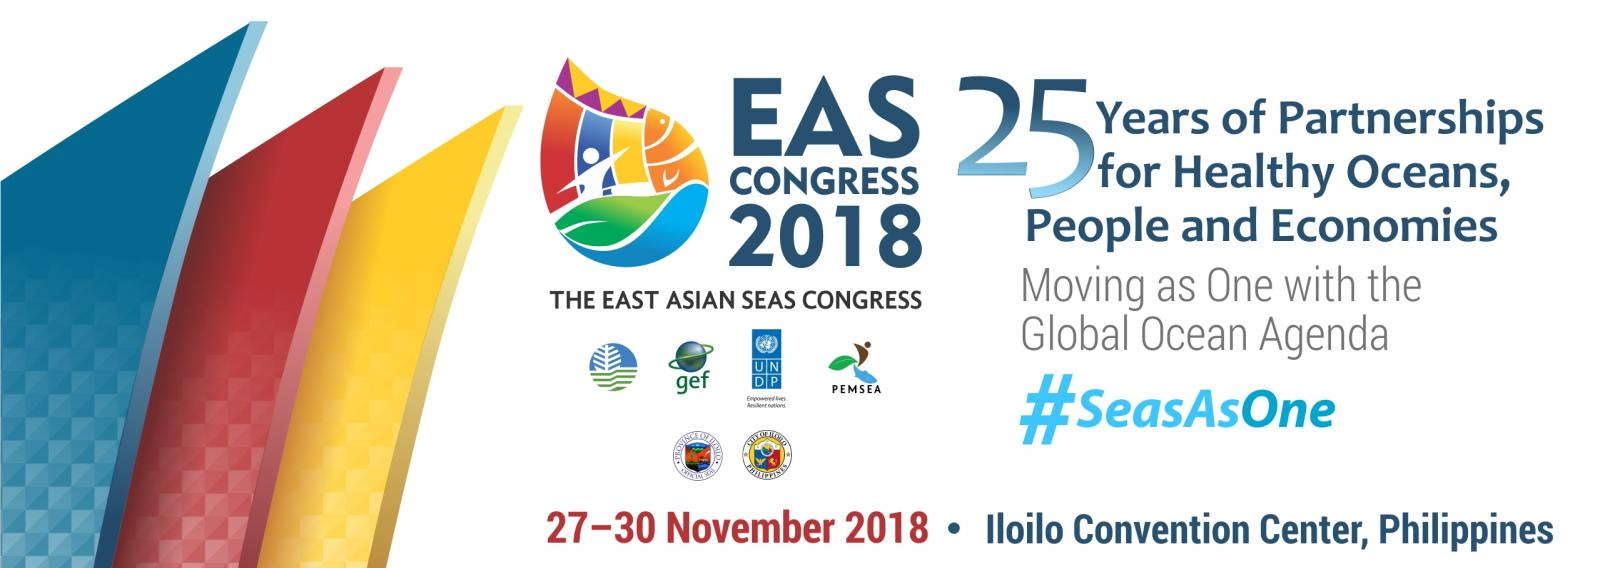 EAS Congress 2018 Logo